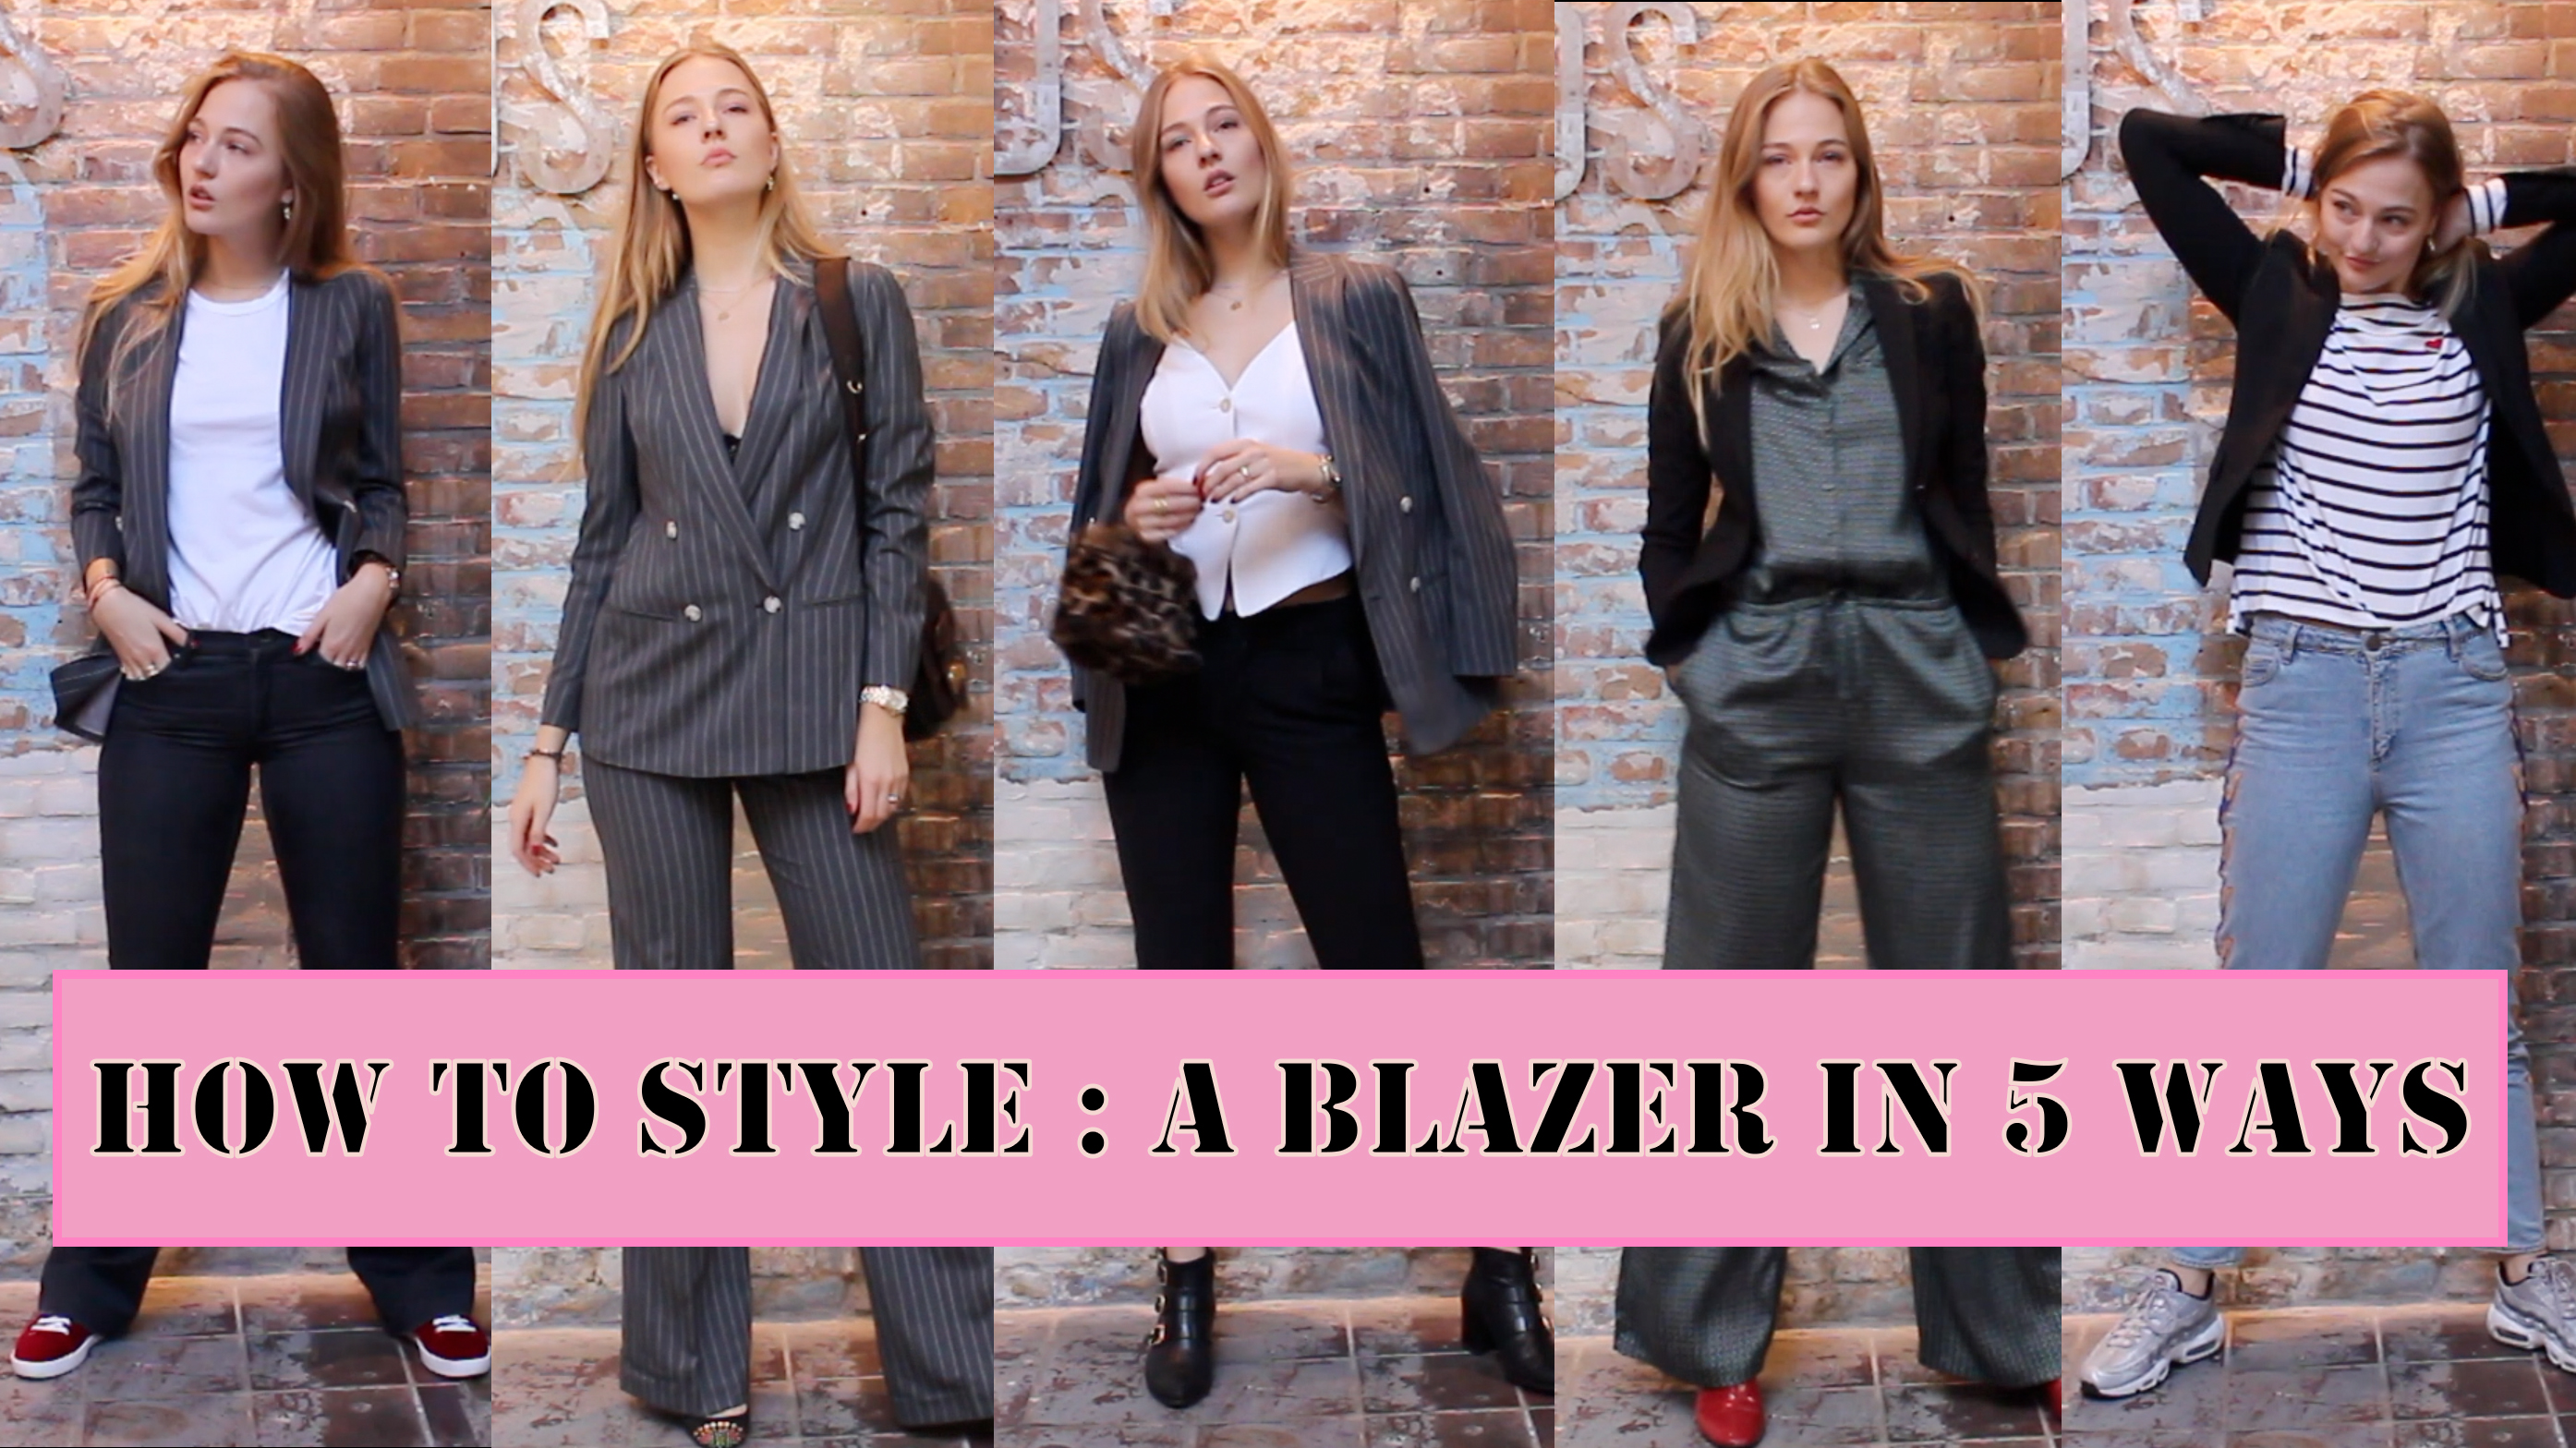 floortjeloves, style, styling, styling video, style video, how to, how to style, how to style a blazer, how to style a blazer in 5 ways, how to wear a blazer, ways to wear a blazer